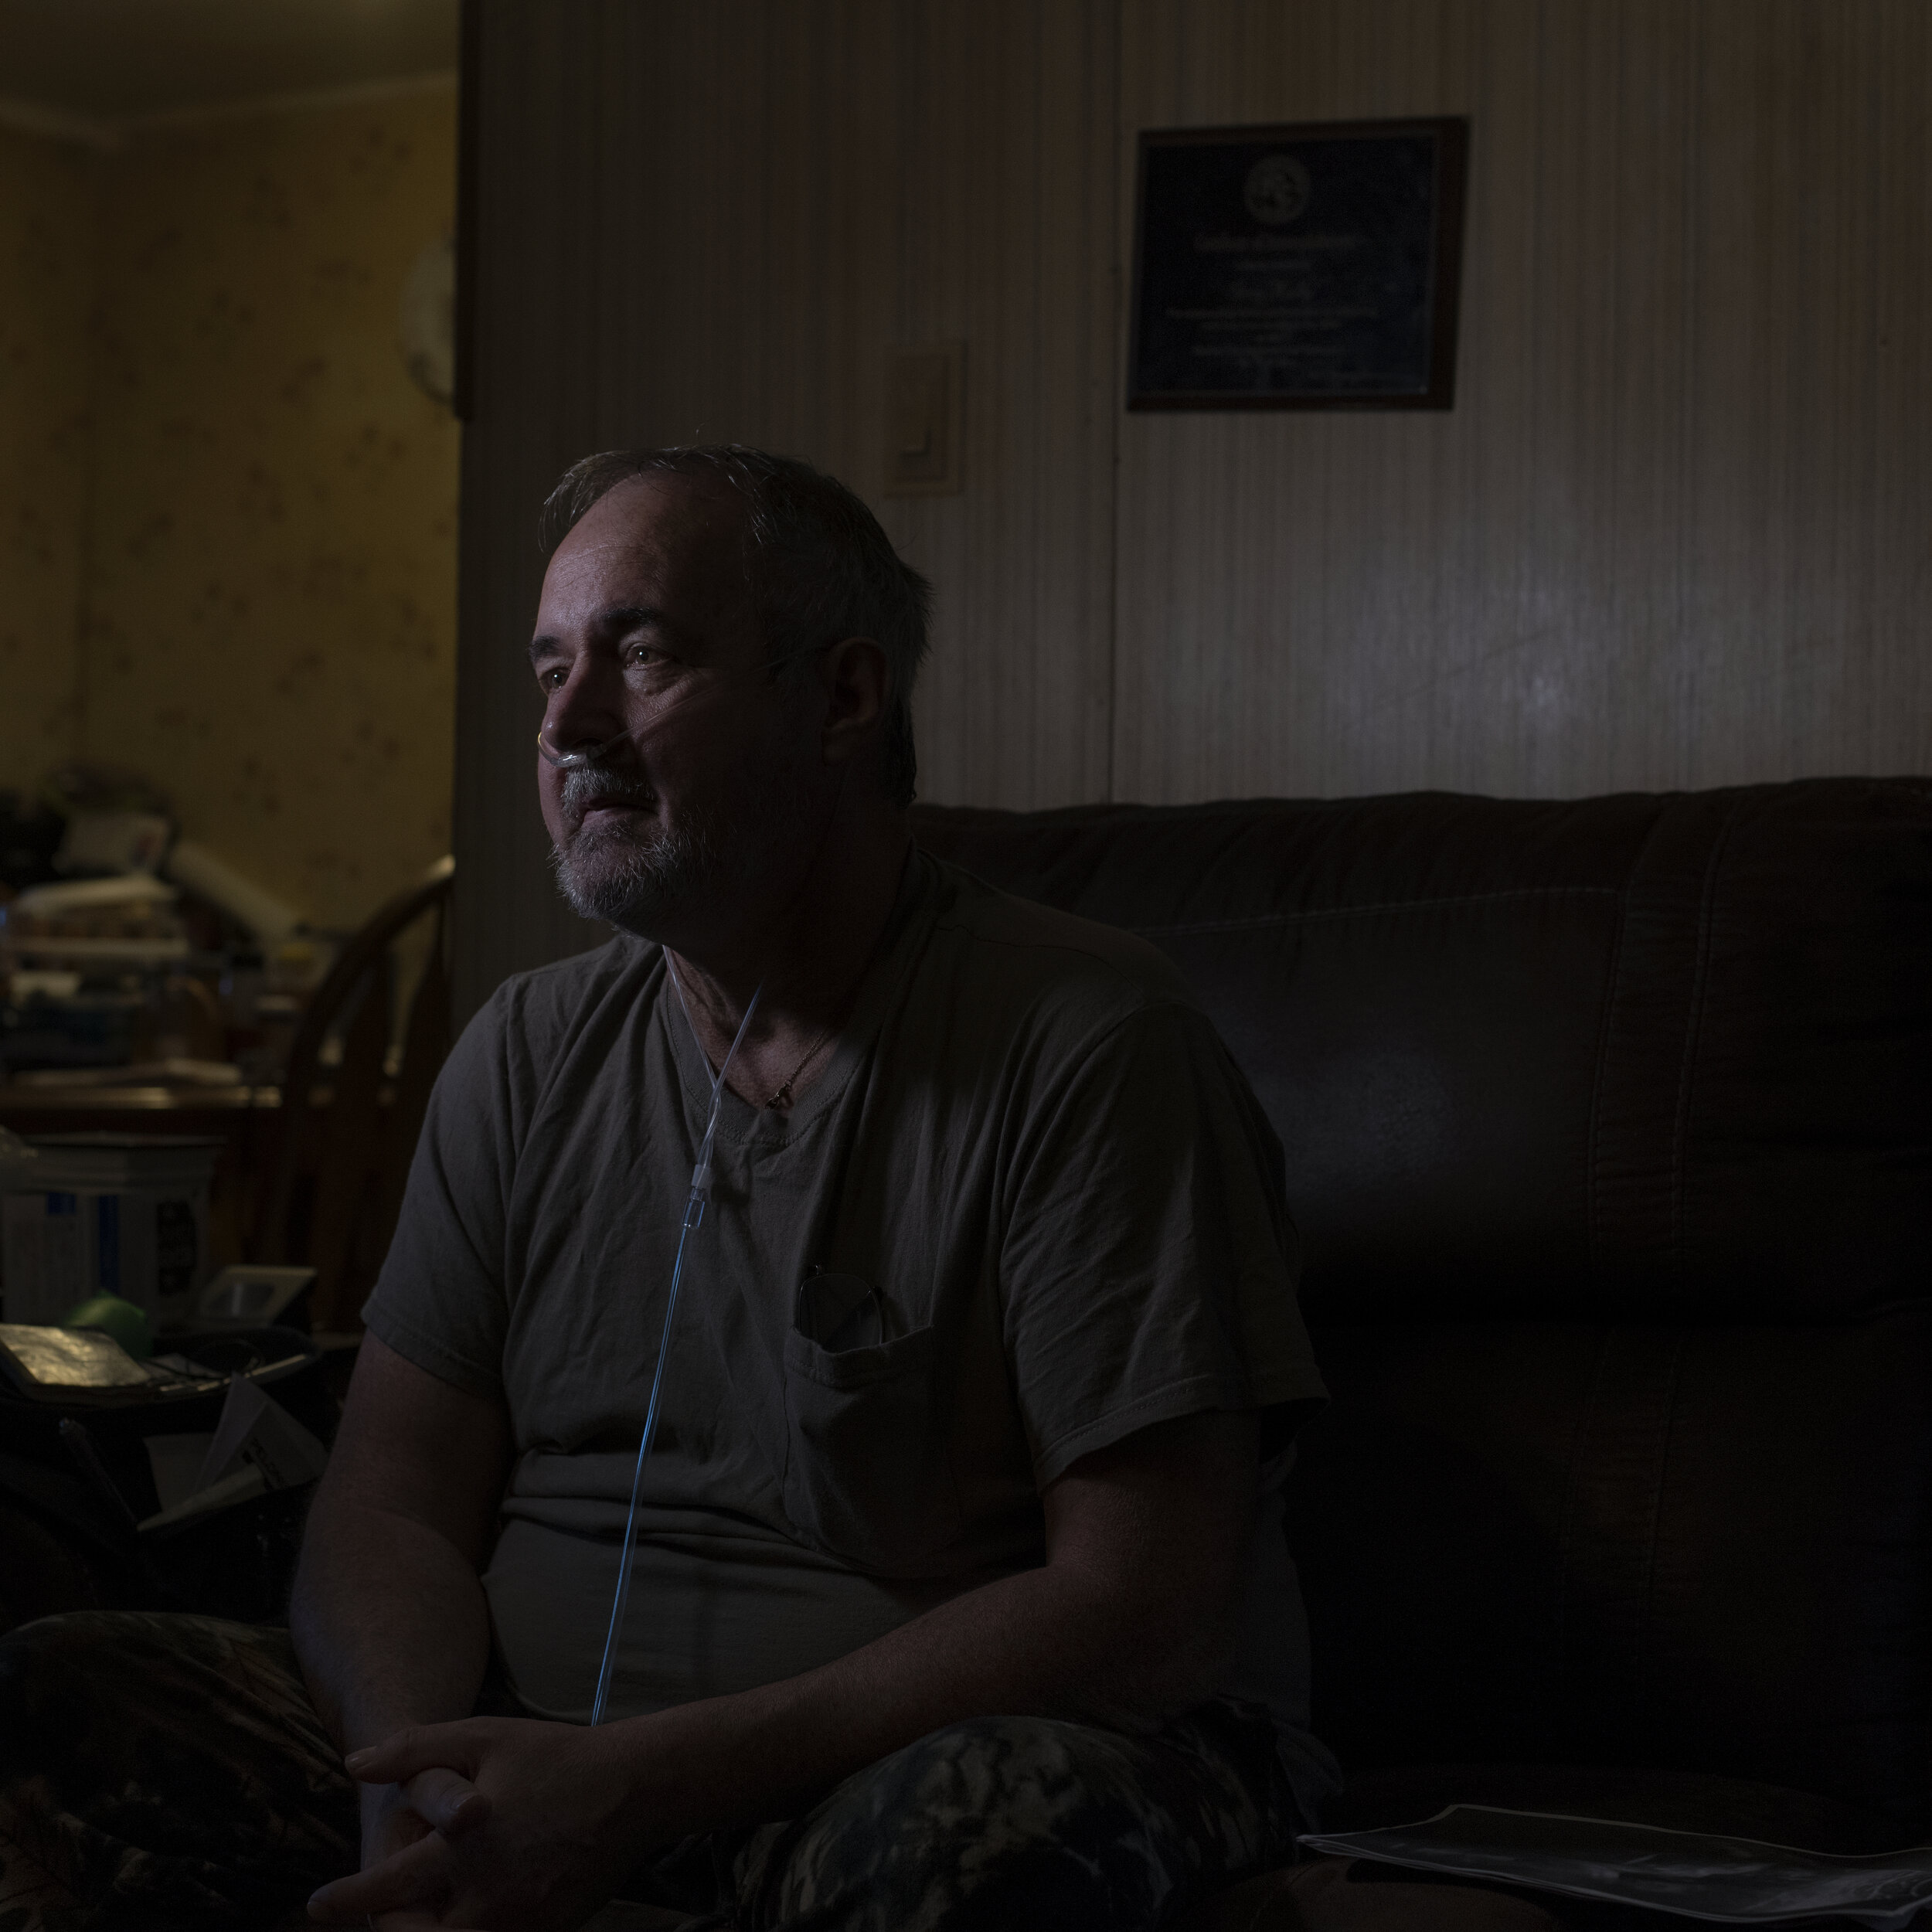 An Epidemic Is Killing Thousands Of Coal Miners. Regulators Could Have Stopped It